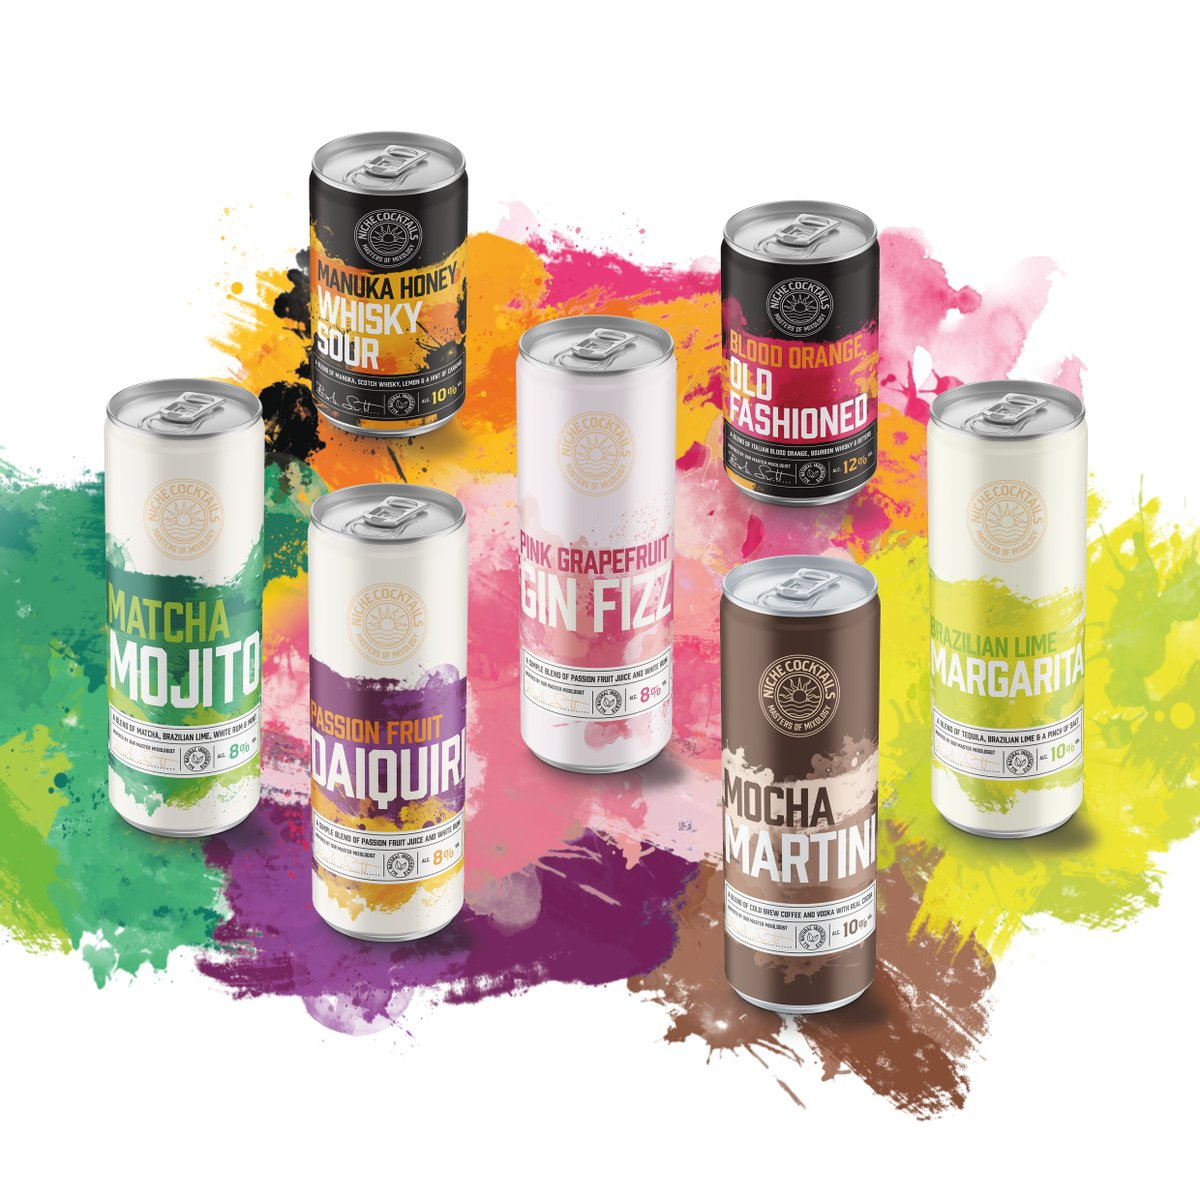 test Twitter Media - New product offering from our client @nichecocktails. Just in time for all your Christmas gift preparation, the company has revealed its Pick N Mix option. If you're a #journalist or #foodanddrink #blogger preparing seasonal content, get in touch. #PRrequest #journorequest https://t.co/dutEambJCF